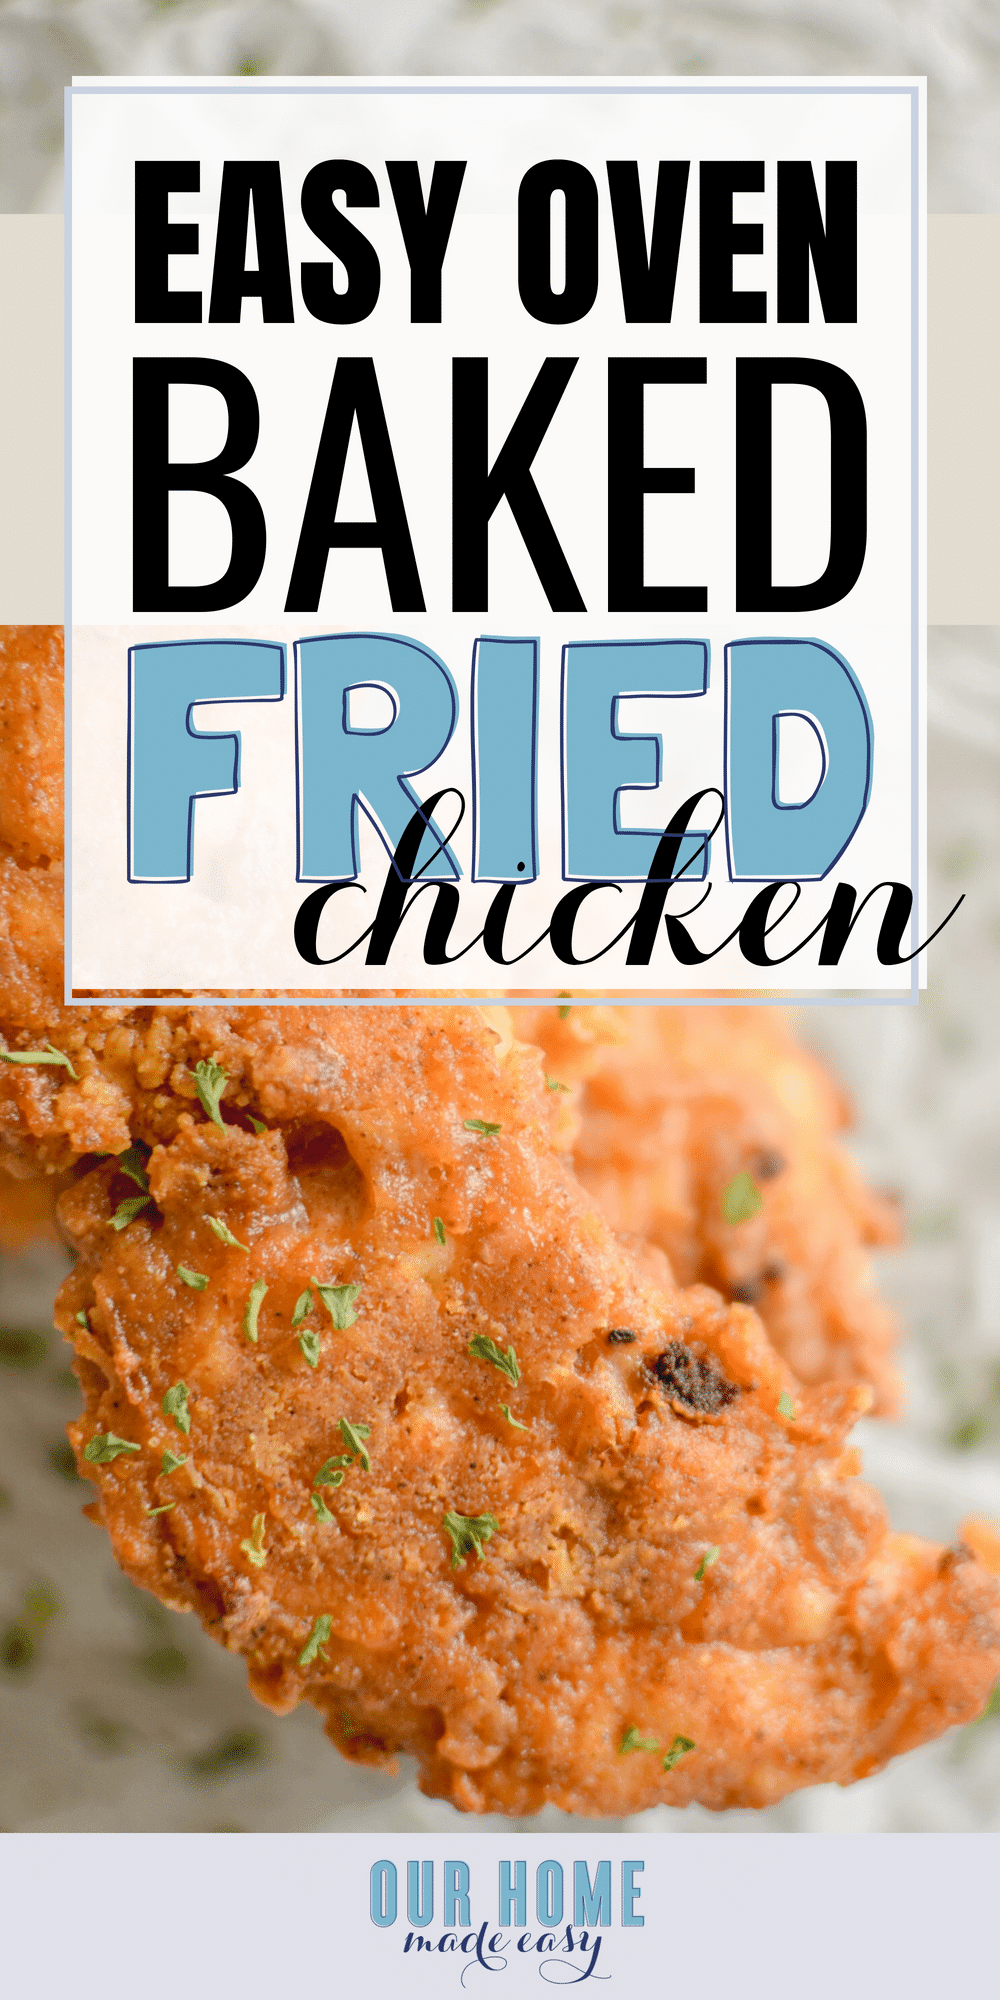 This oven baked fried chicken is super easy to make! It's perfect for so many dinner ideas.